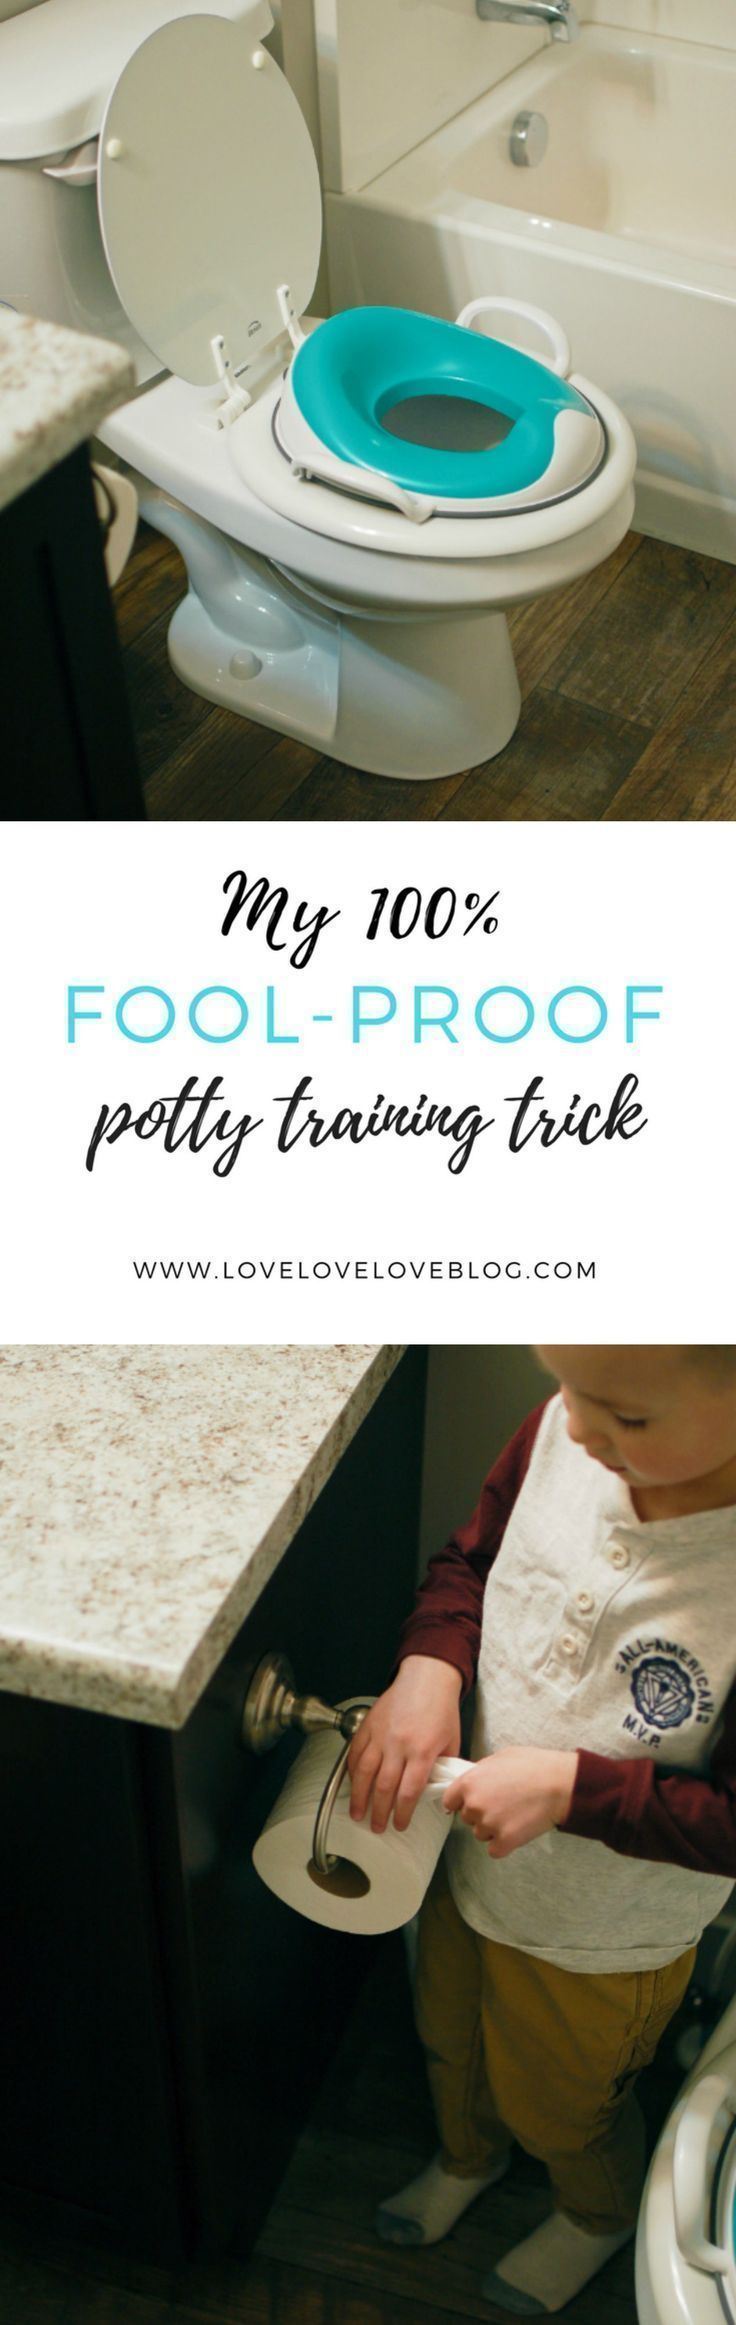 You won't need a potty training chart after you read my best tip for potty training! It really works even for stubborn boys and girls. #pottytrainingtipsforgirls #pottytraininggirls #pottytrainingboysstubborn #pottytrainingboyschart